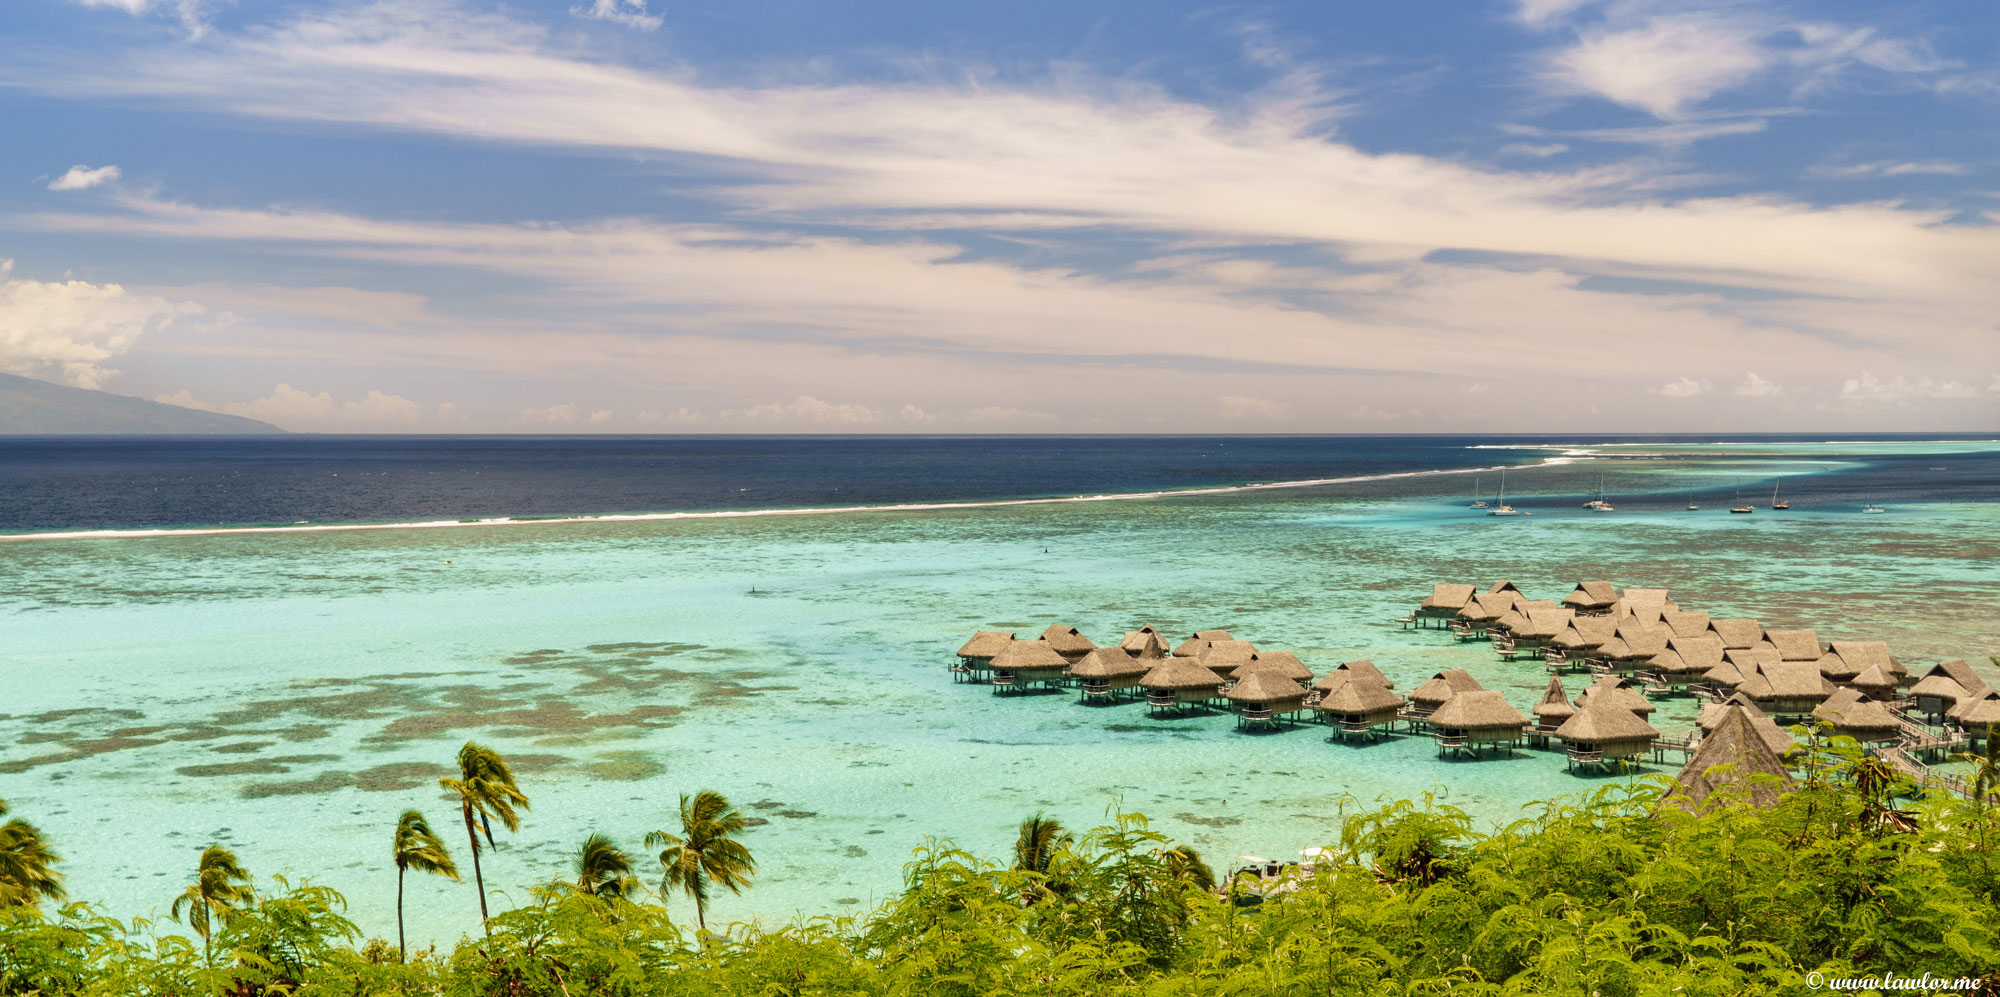 Sofitel Moorea - French Polynesia, Free Landscape Photography, free landscape photos, free nature images, free HD images, free high definition stock images, free stock images download, desktop background, desktop wallpapers, free screensaver, landscape photography